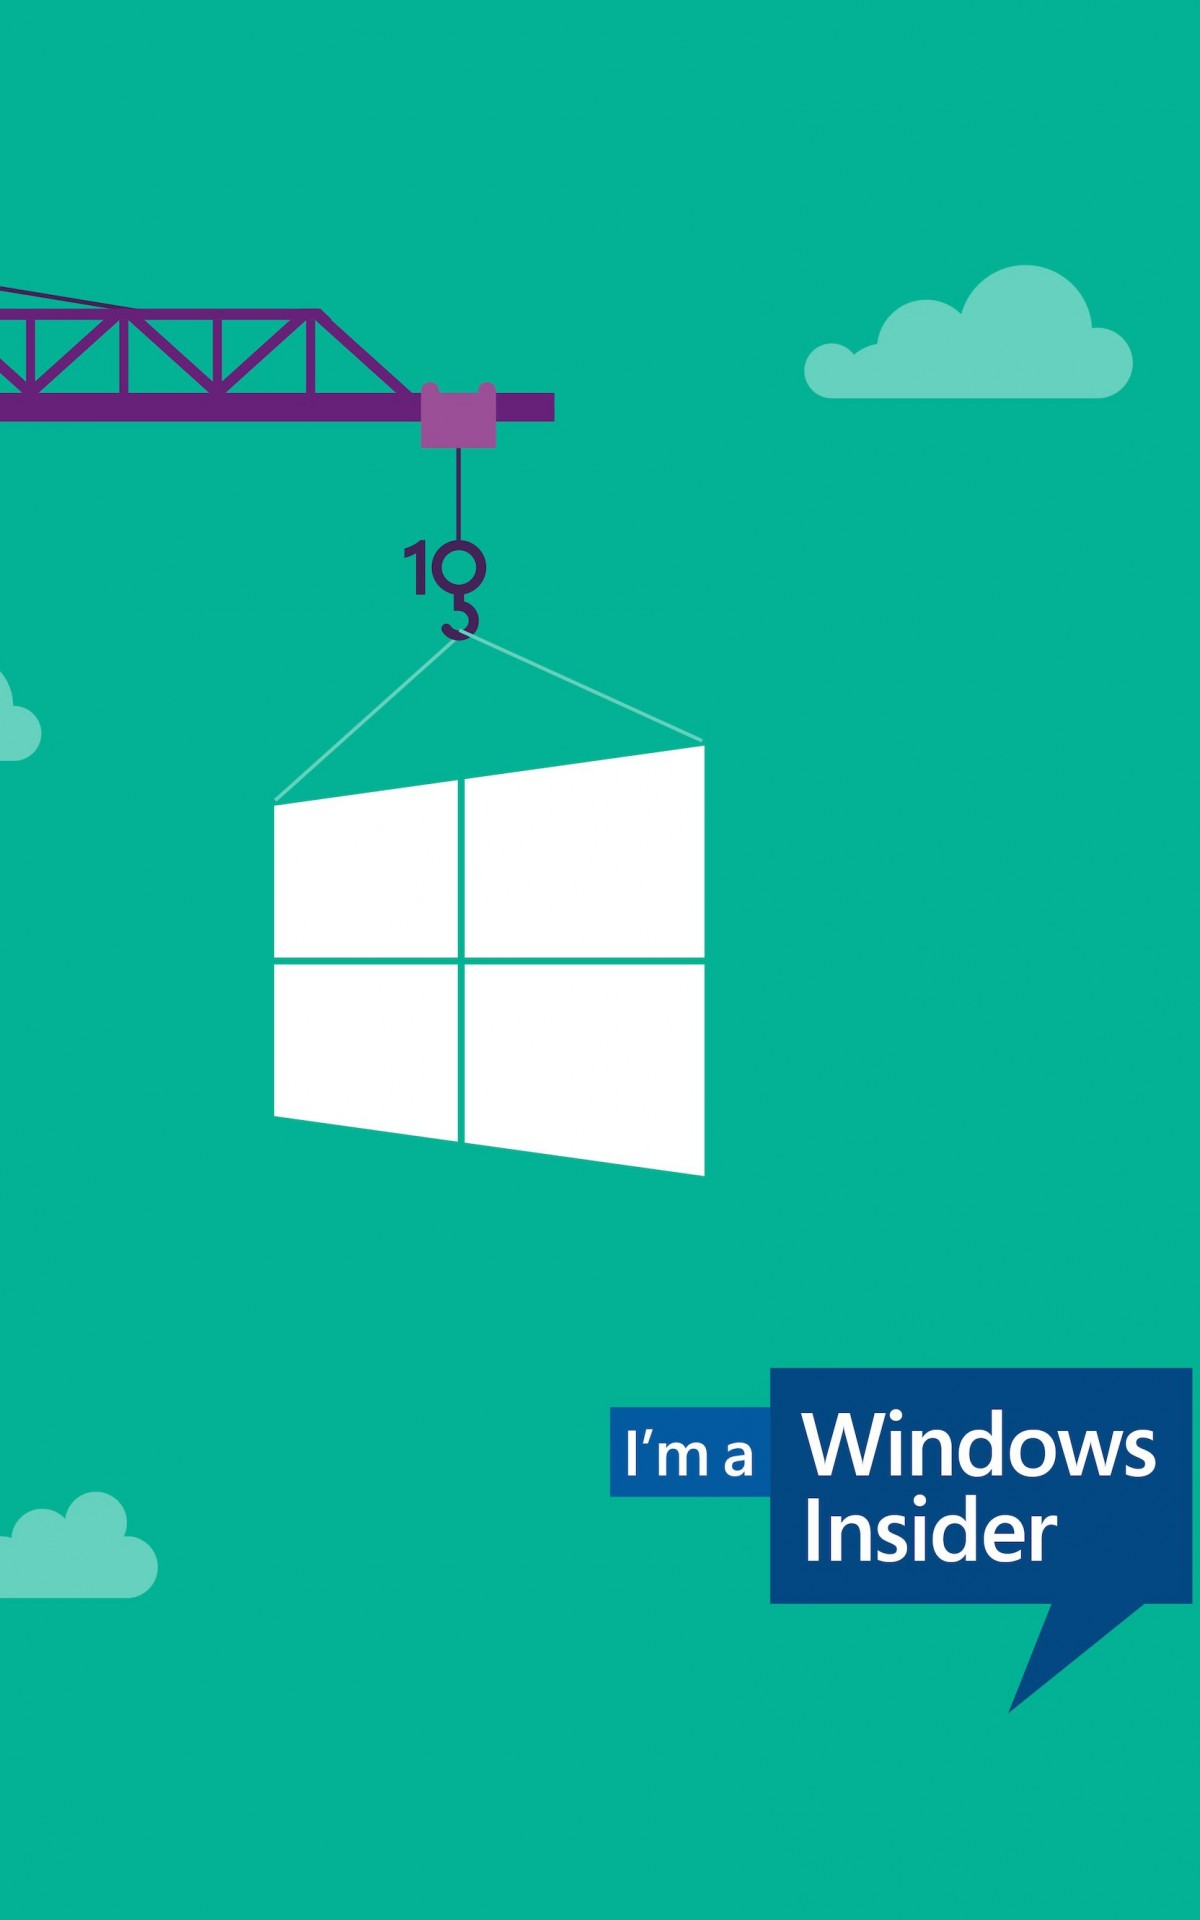 Windows Insider Wallpaper for Amazon Kindle Fire HDX